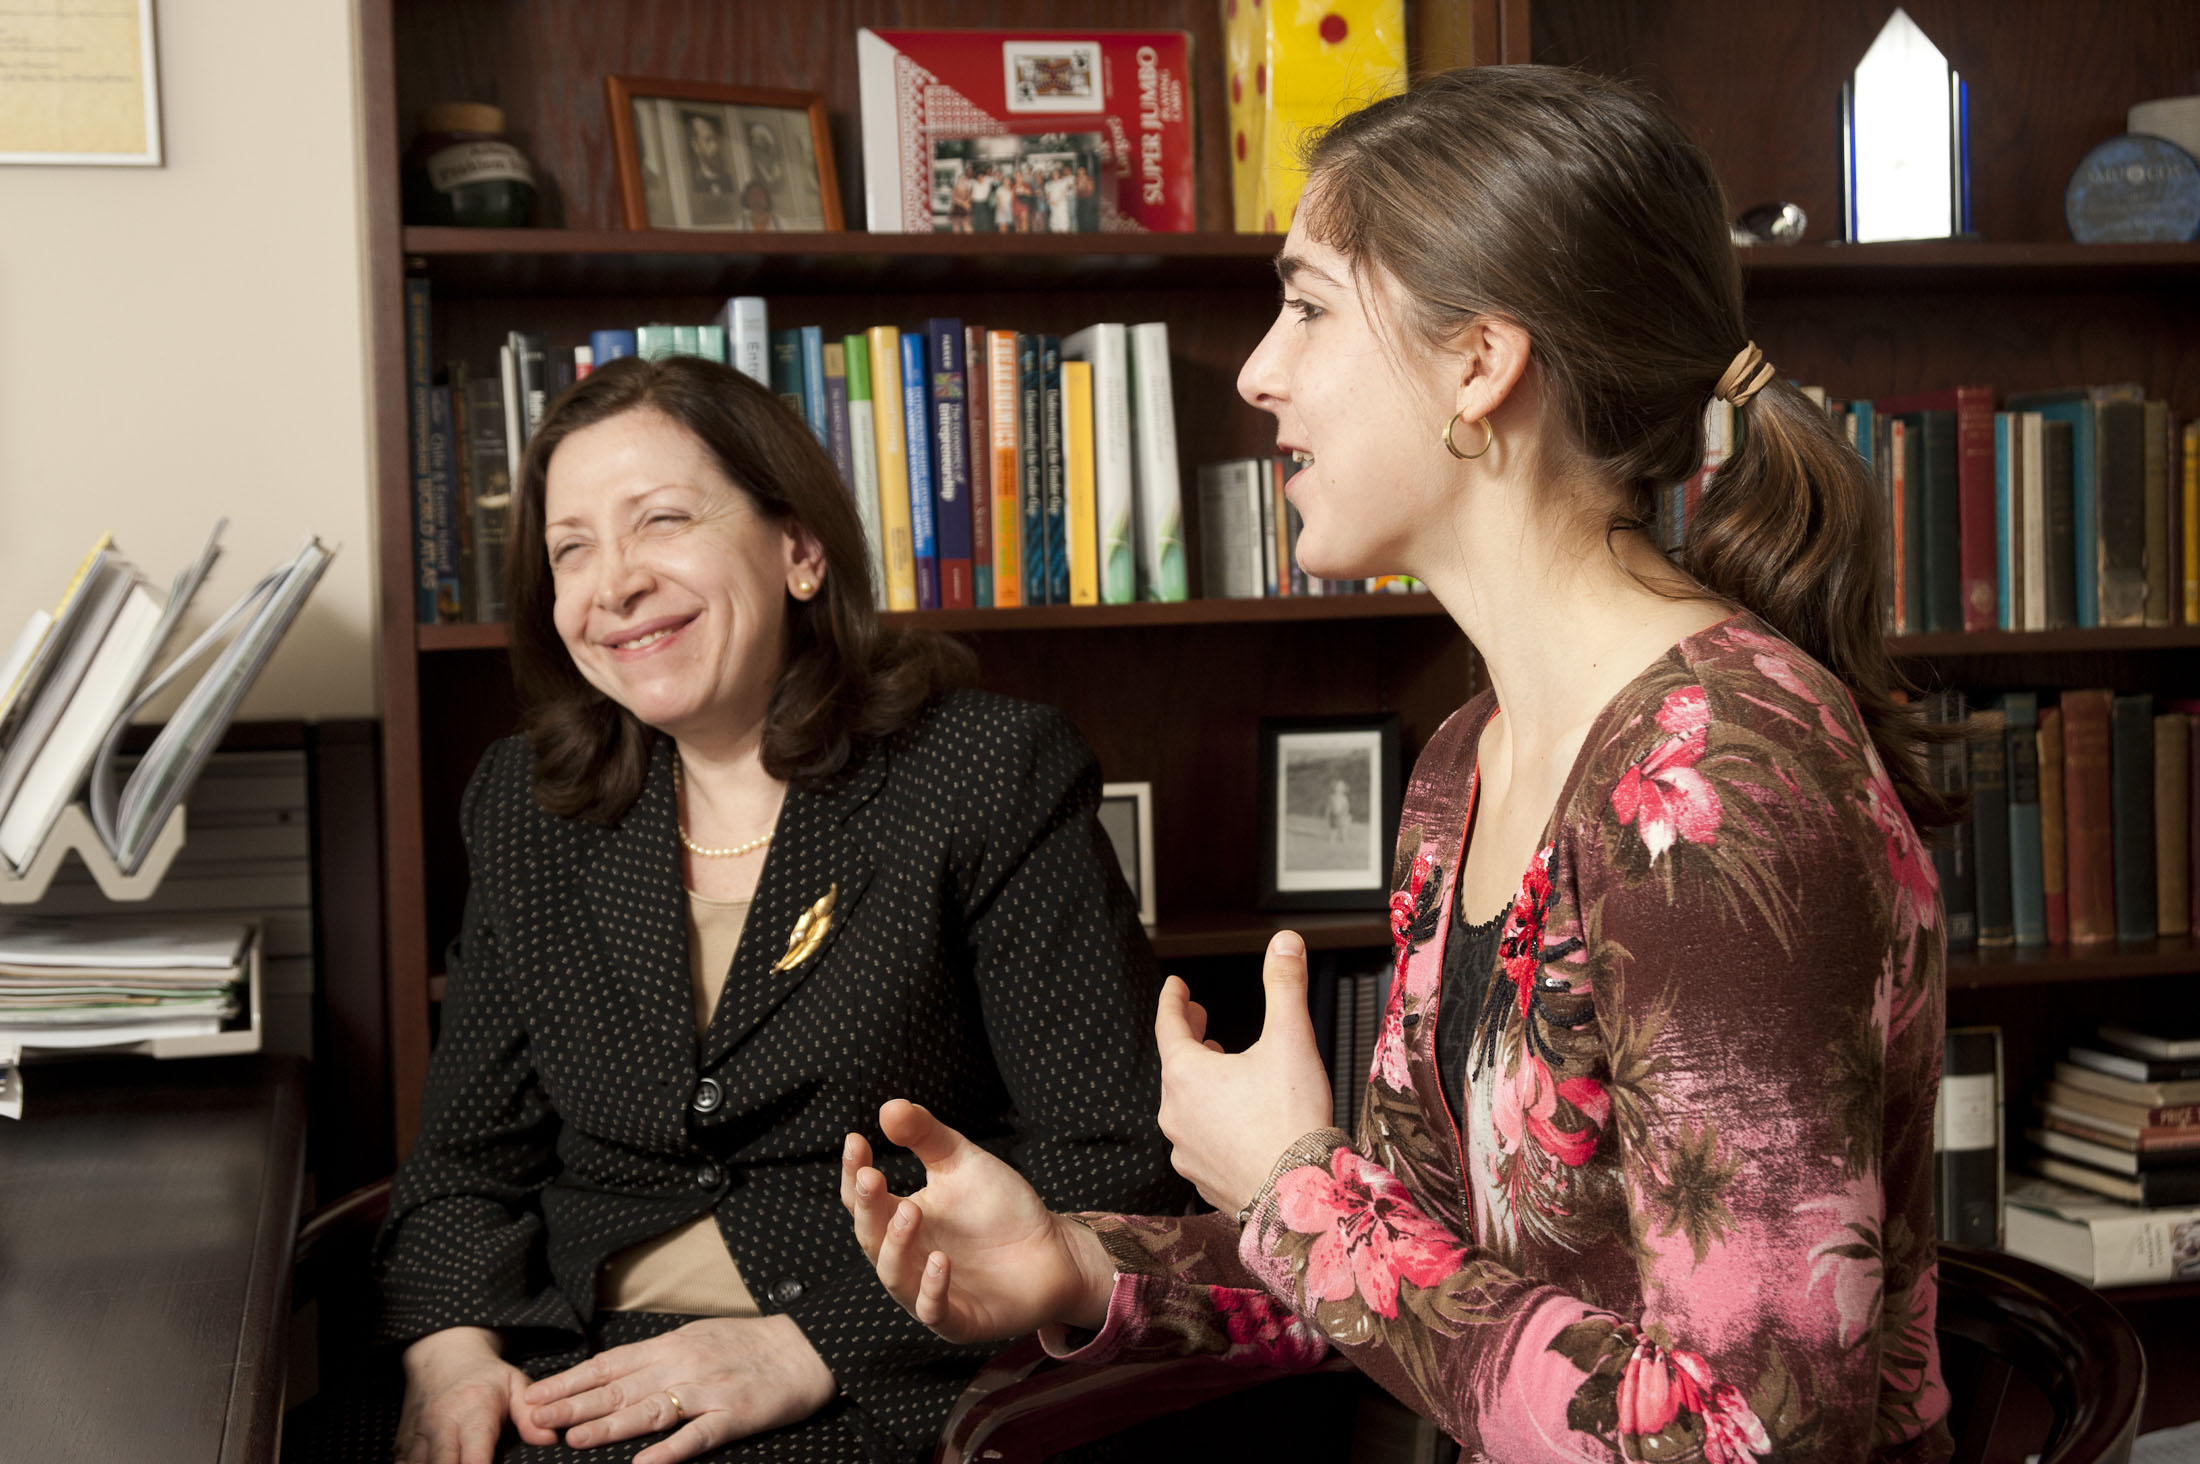 Professor Maria Minniti and Kalindi Dinoffer